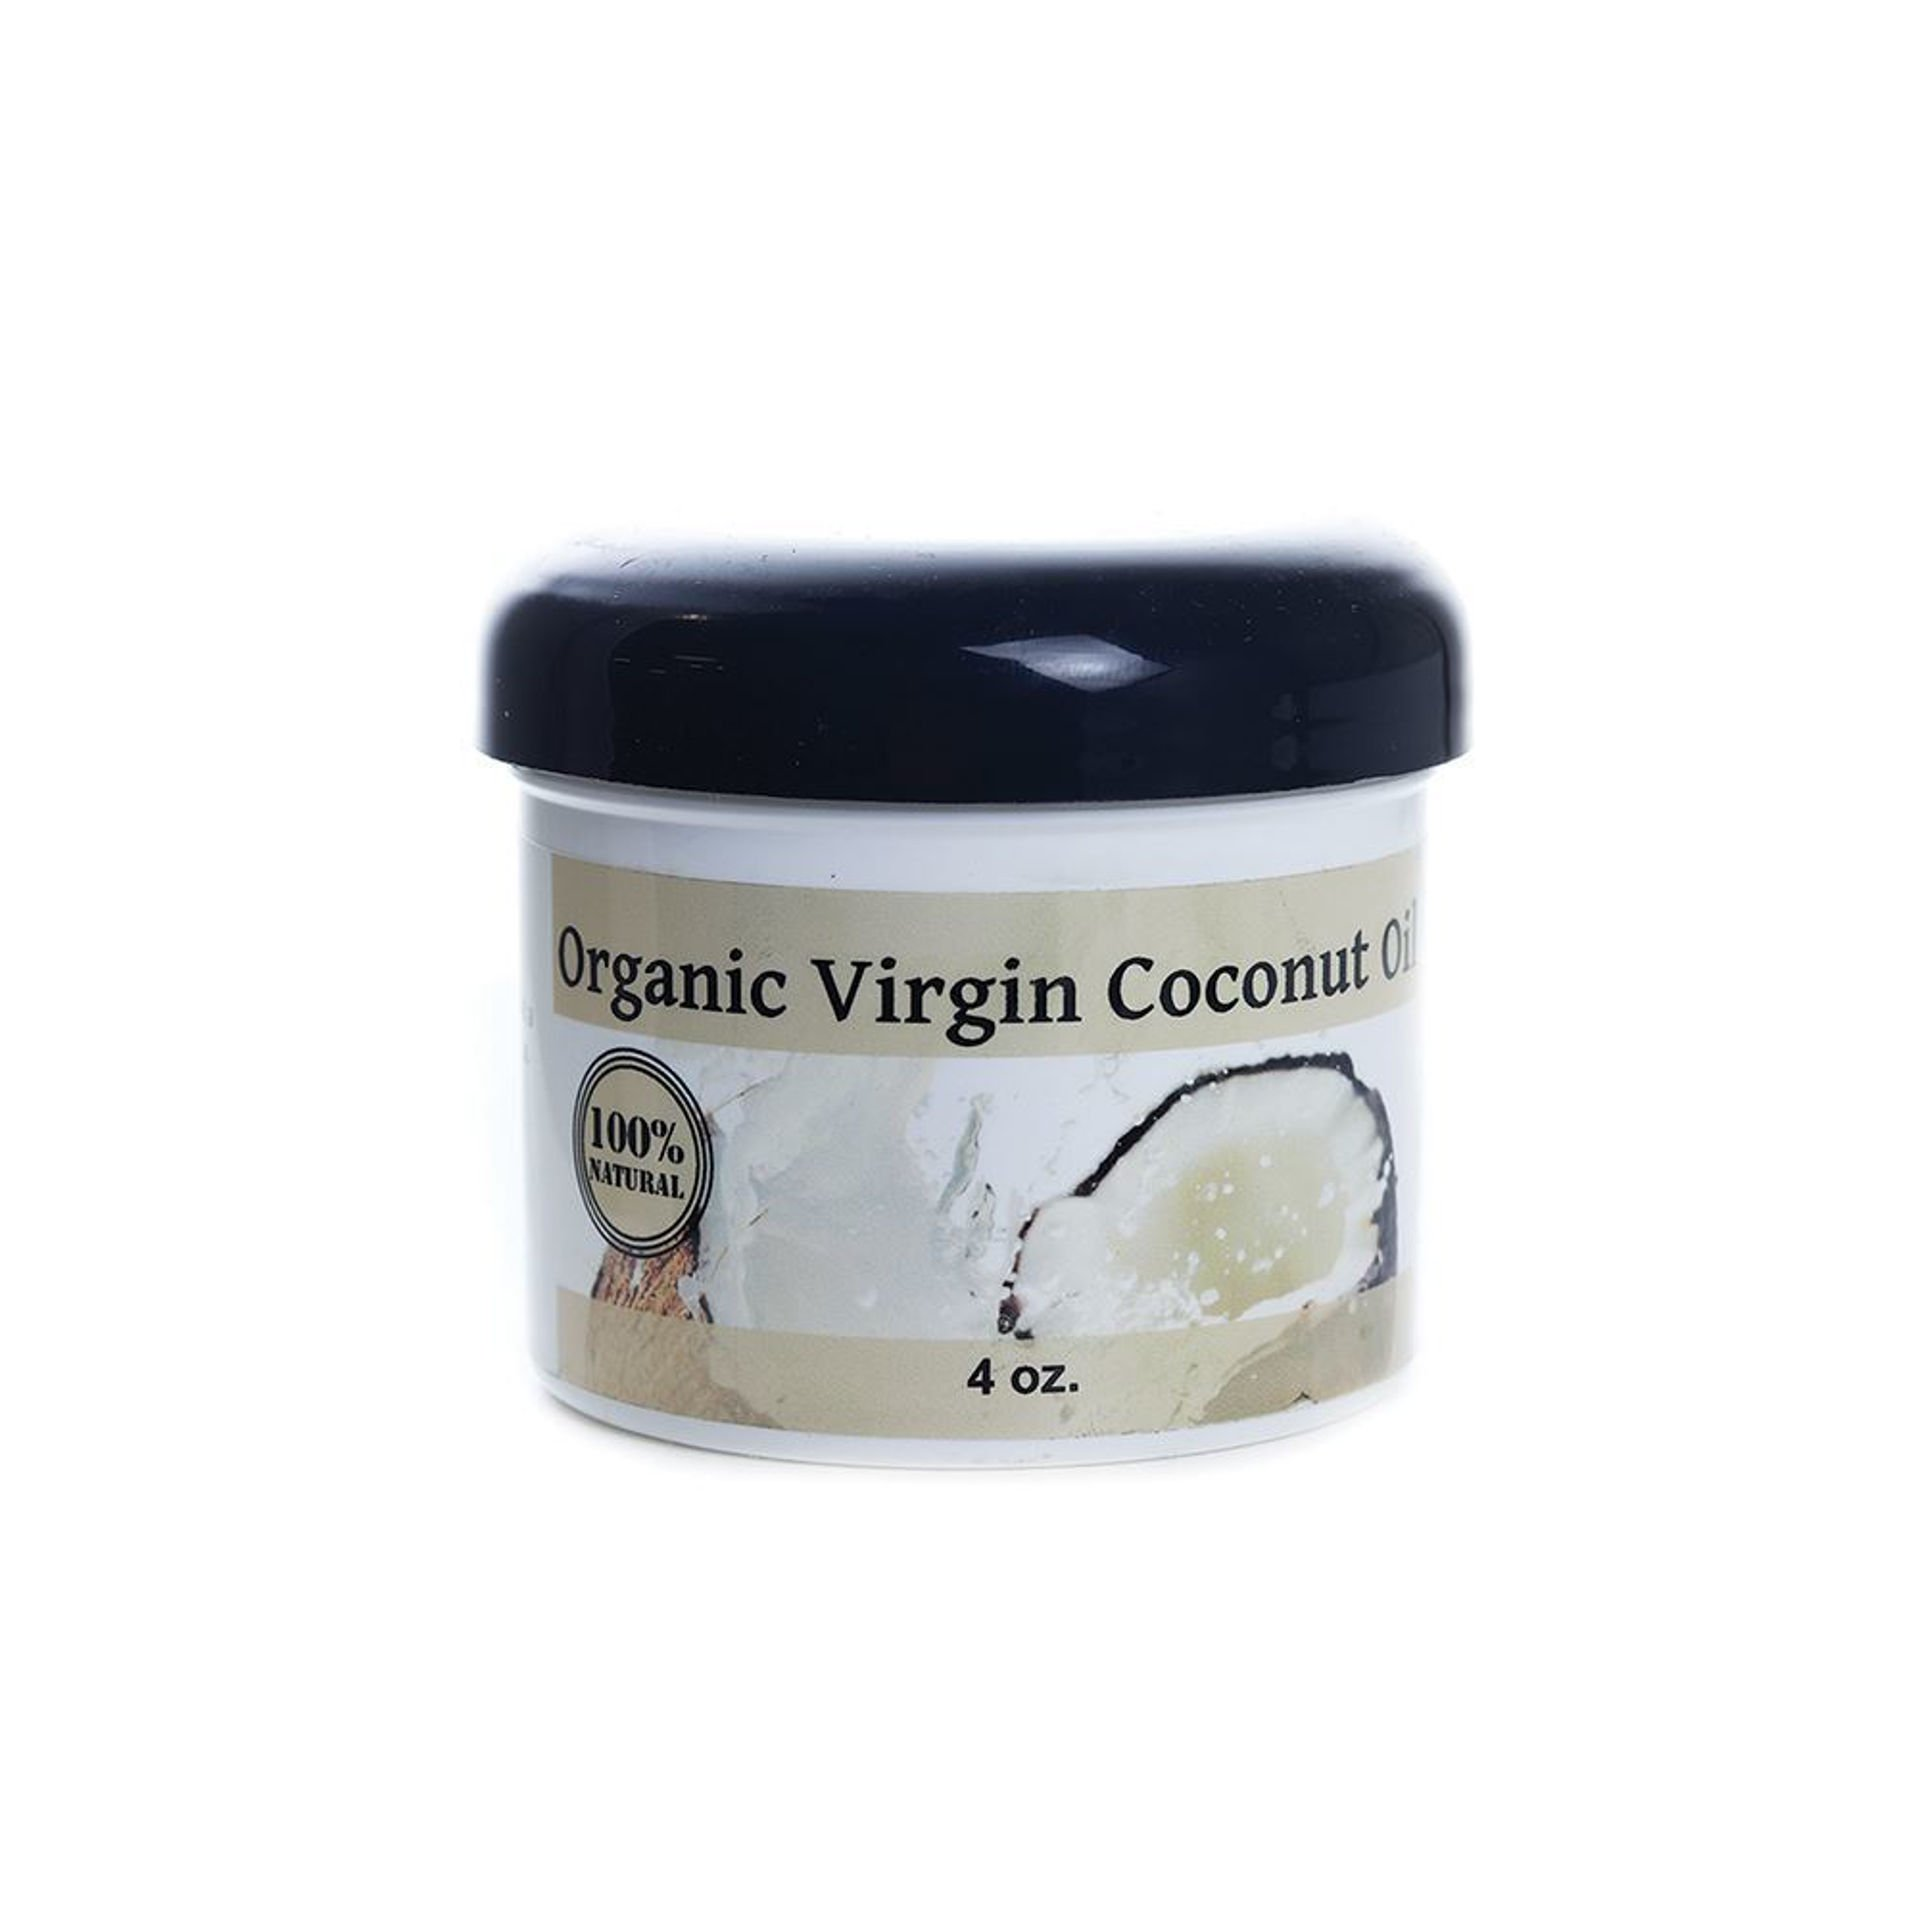 Picture of Organic Virgin Coconut Oil - 4 oz.